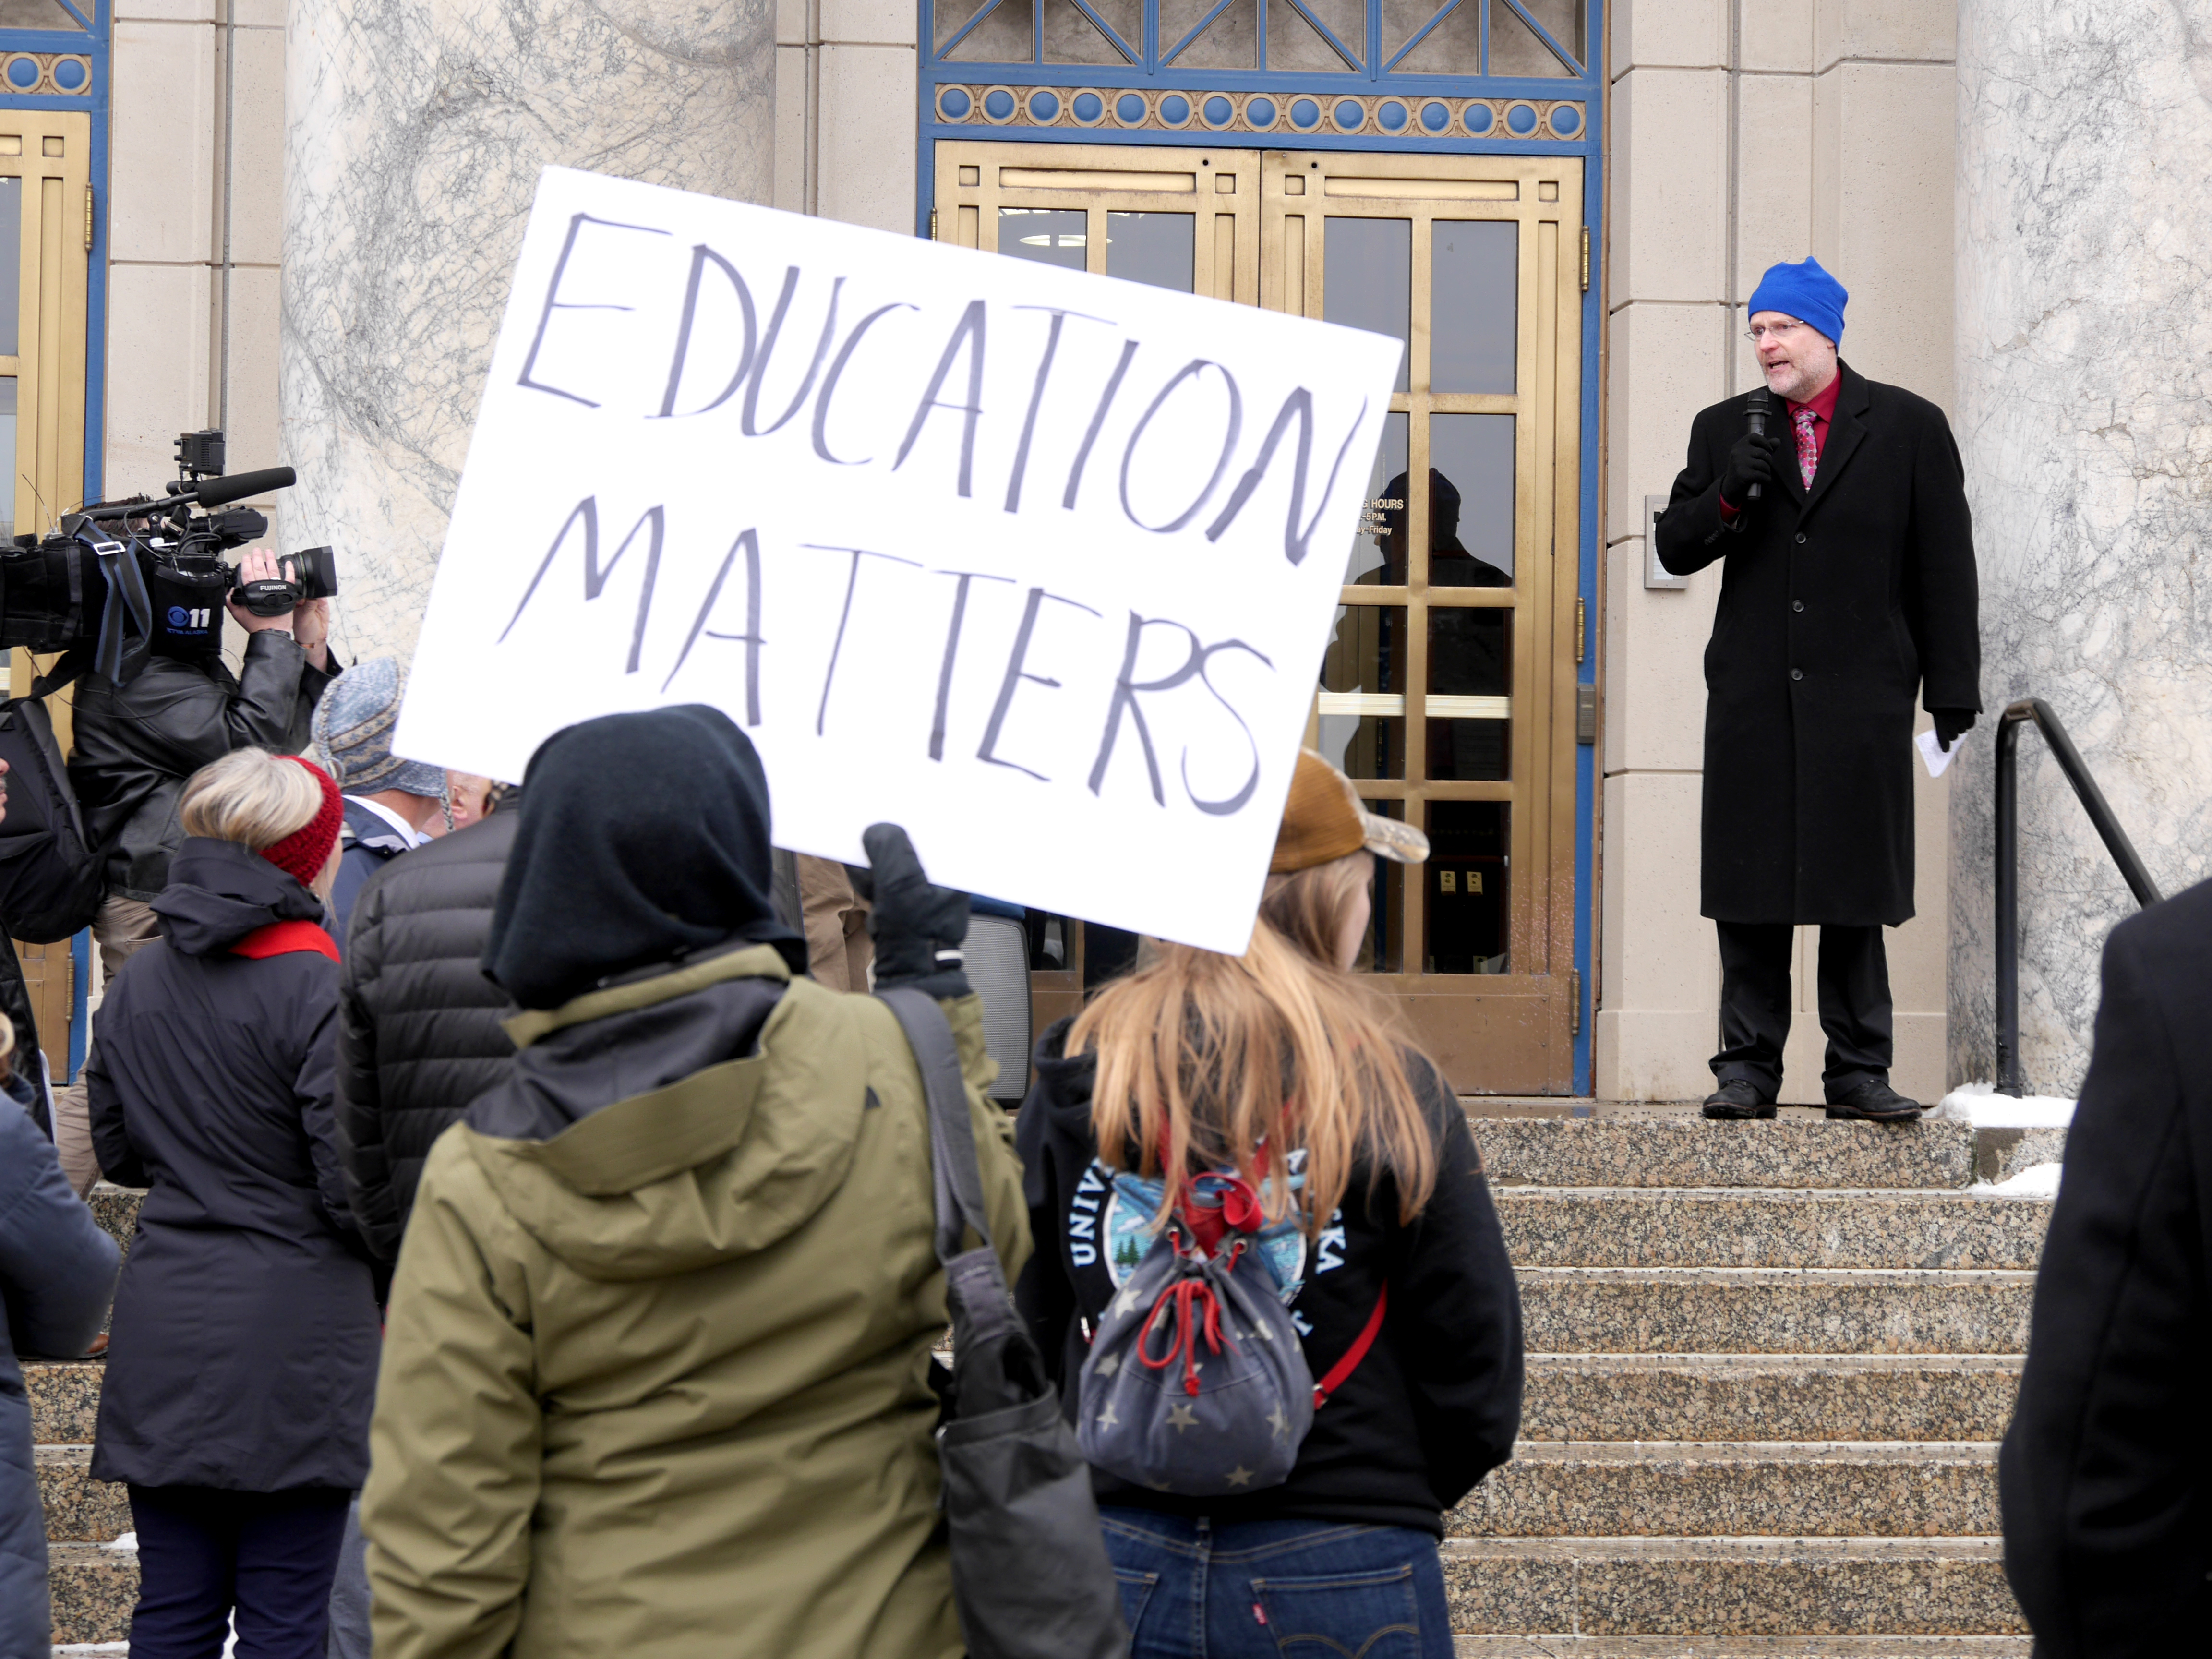 UAF neurobiology and anatomy.Professor Abel Bult-Ito speaks at a rally in front of the Capitol in Juneau on Feb. 13, 2019. About 80 people participated in the rally organized by the University of Alaska to advocate for support of state funding. It was held on the same day Gov. Michael Dunleavy released the latest version of his proposed state budget.